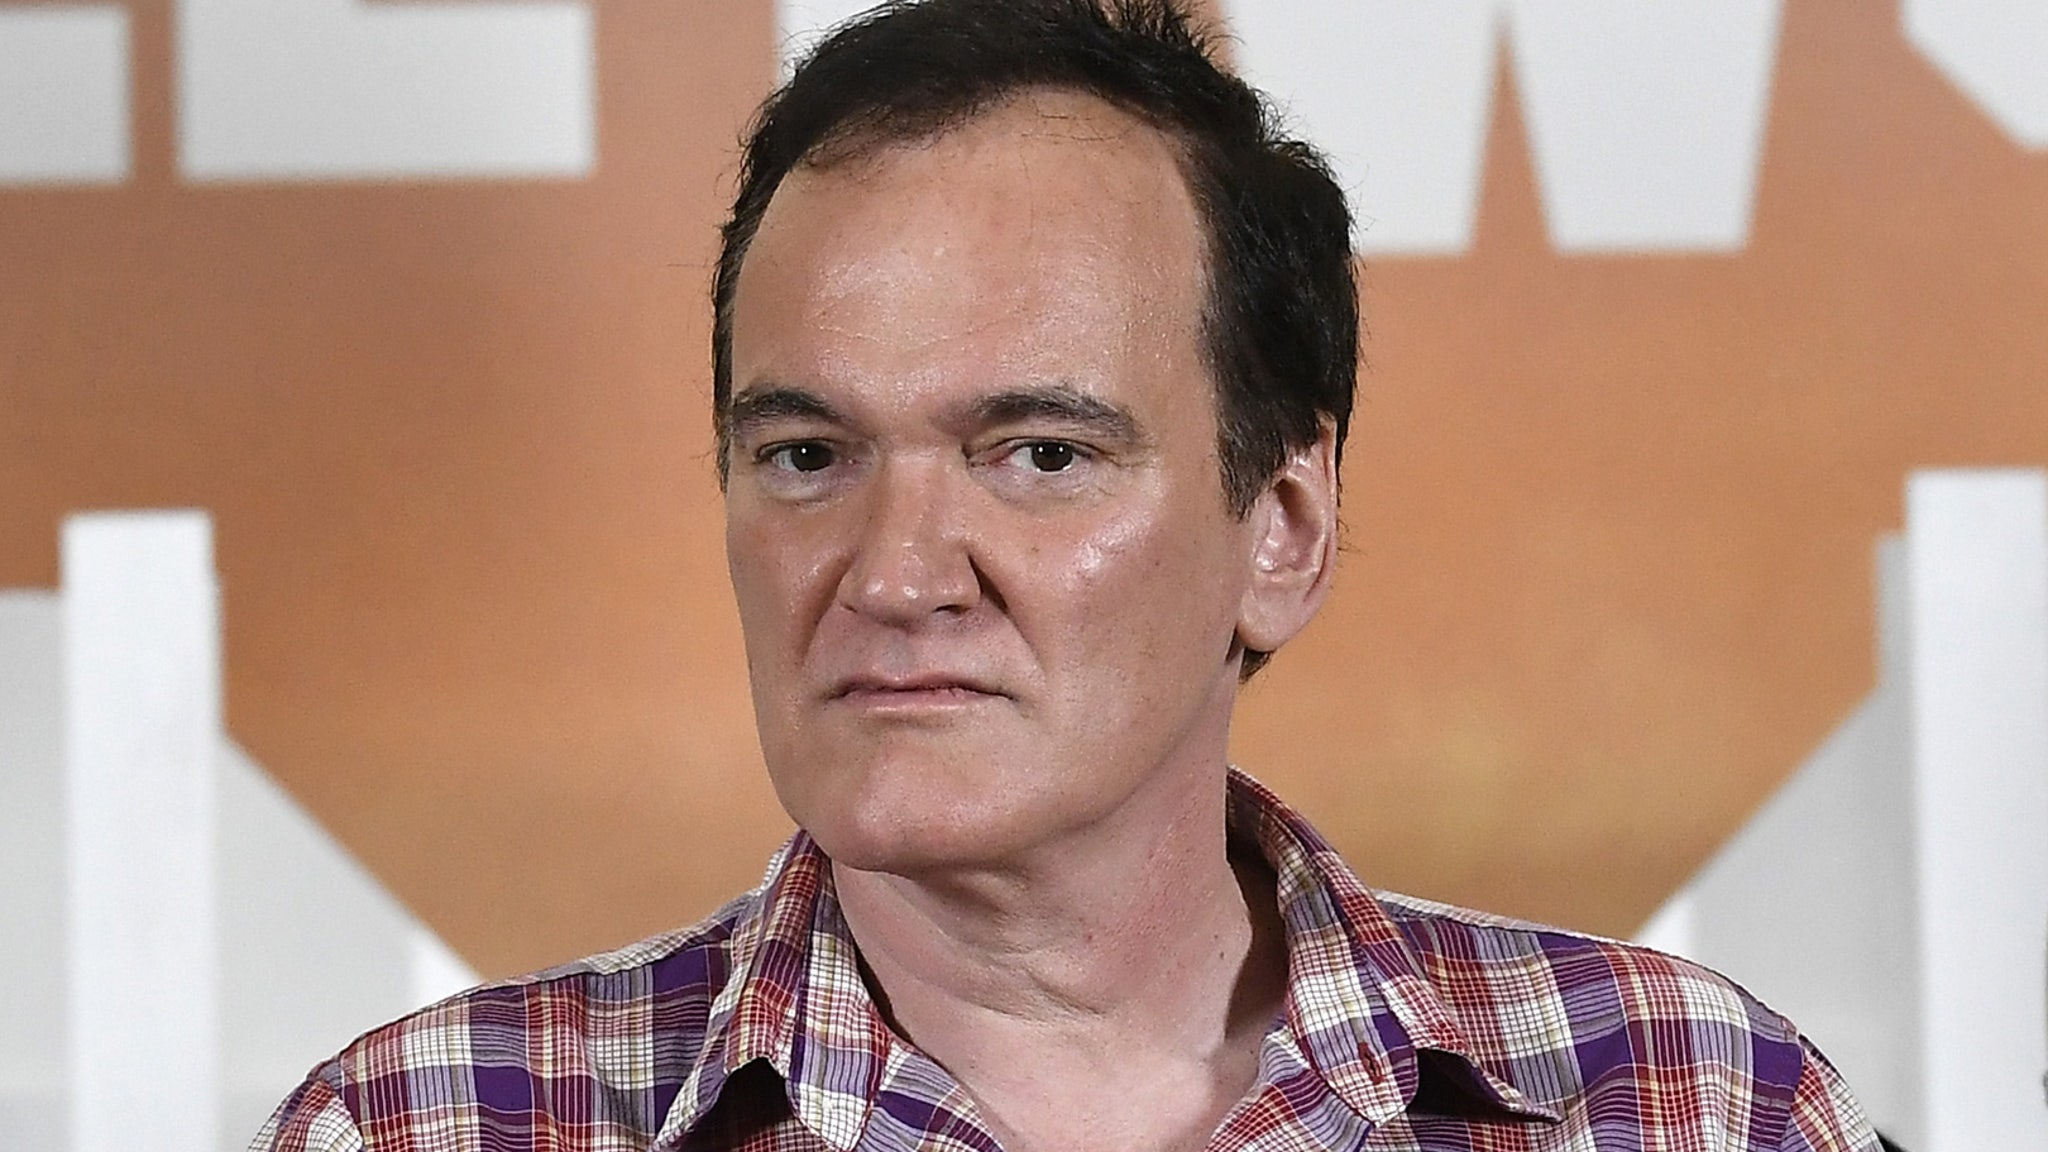 Why Quentin Tarantino Hasn't Given His Mother A 'Penny' For His Success